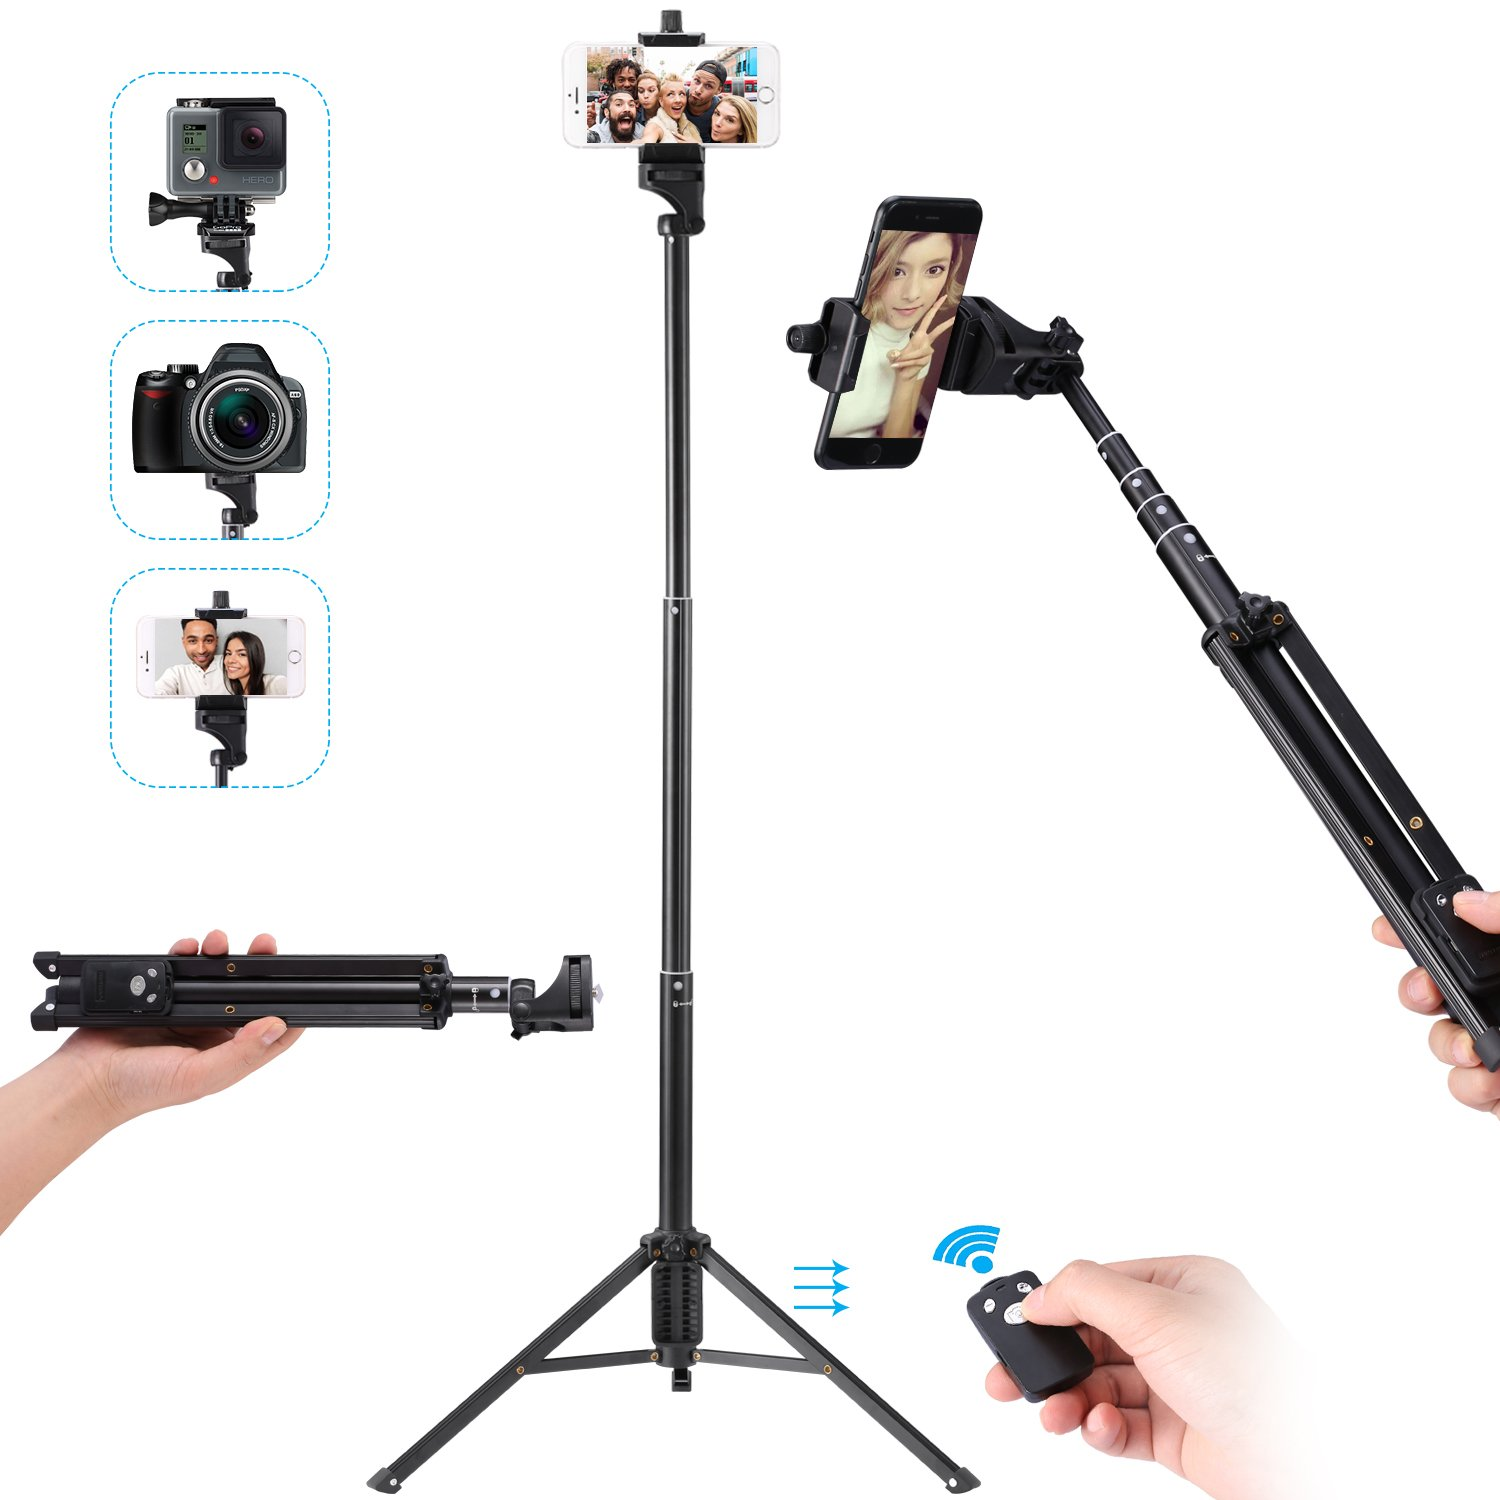 Kwithan Yunteng Selfie Stick Tripod, 54 inch Adjustable Phone Tripod, Extendable Camera Tripod for Cellphone, Camera, Gopro, Attached Wireless Bluetooth Remote for Smart Phone